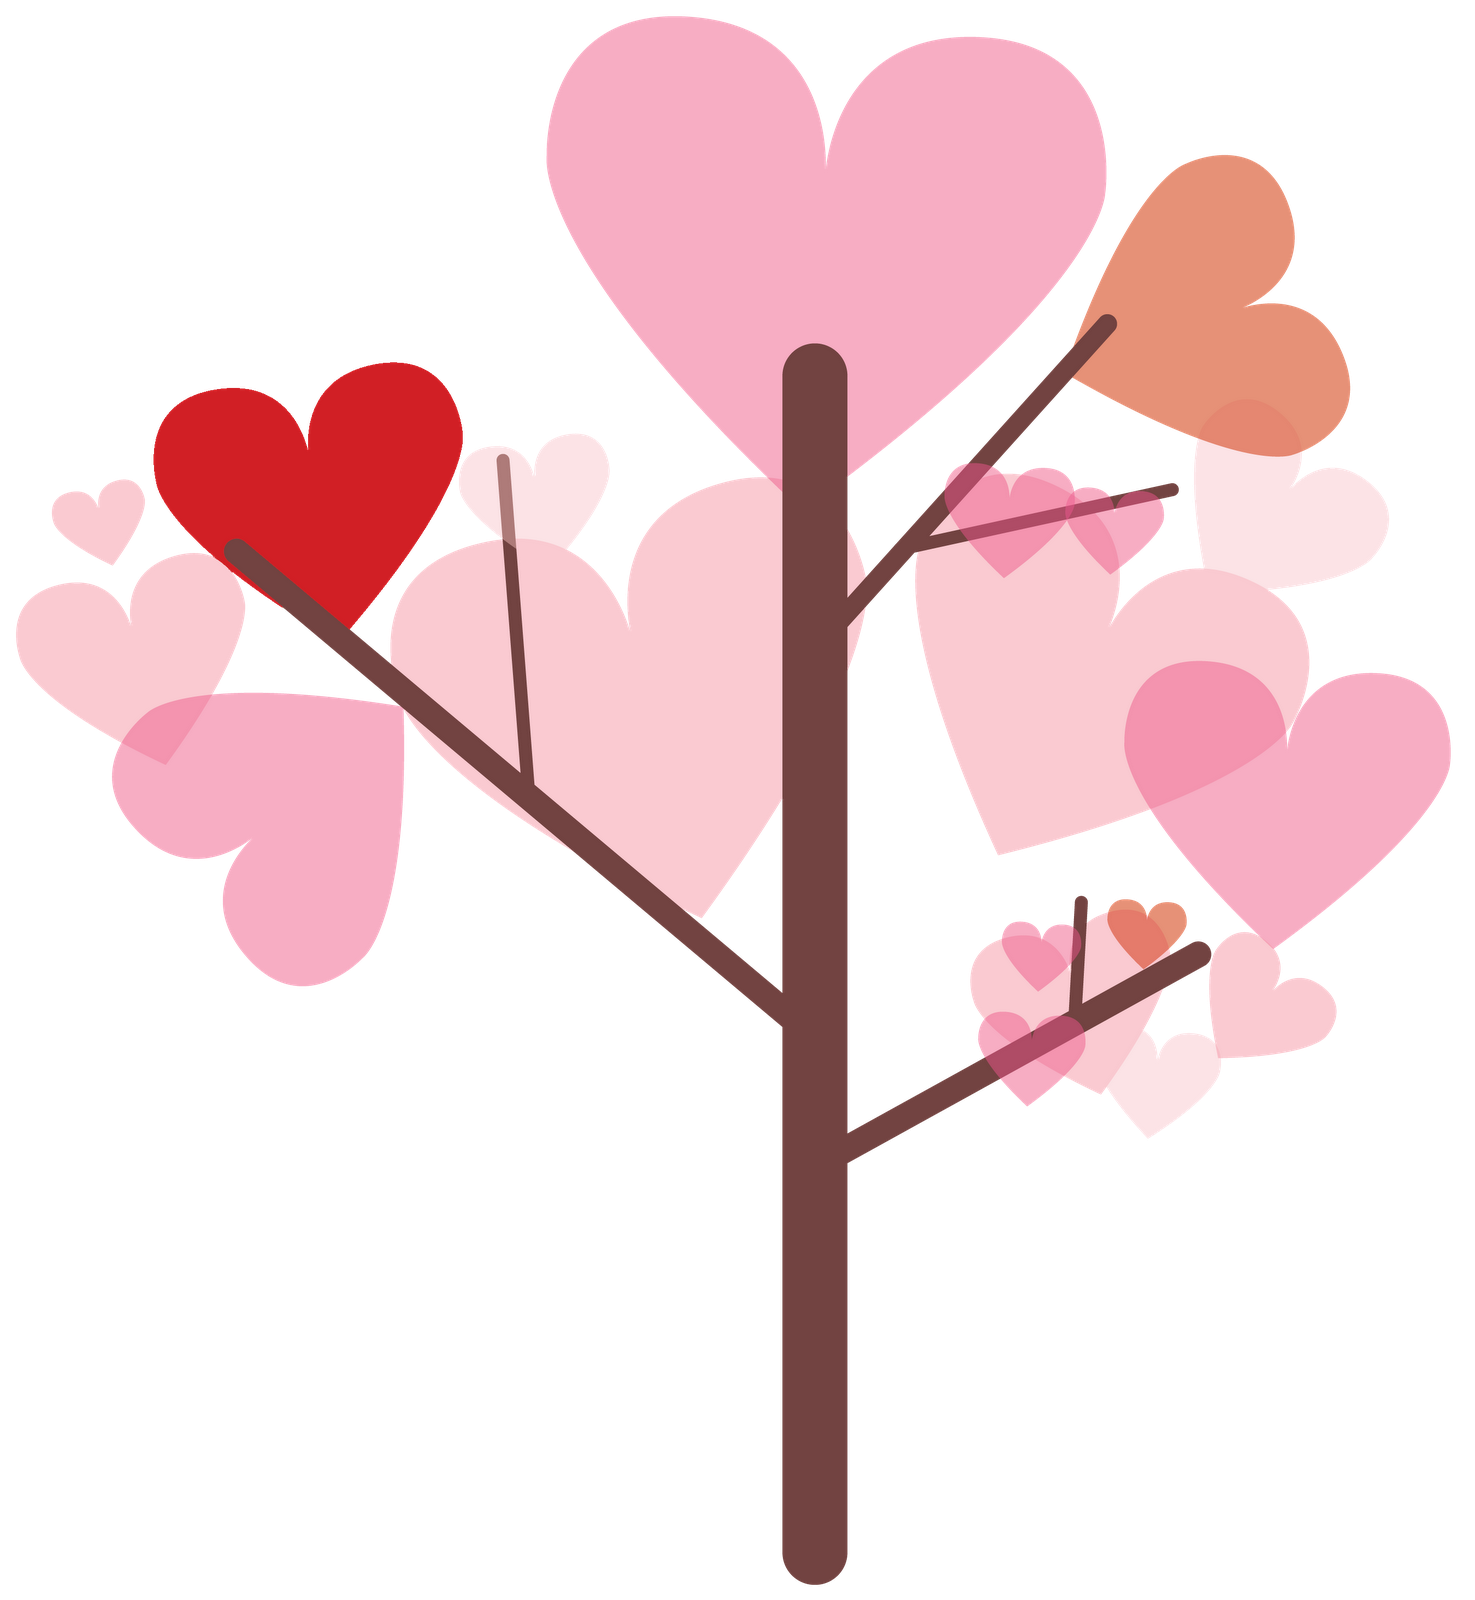 Love clipart clipart freeuse stock Royalty Free Clipart - ClipartFox freeuse stock